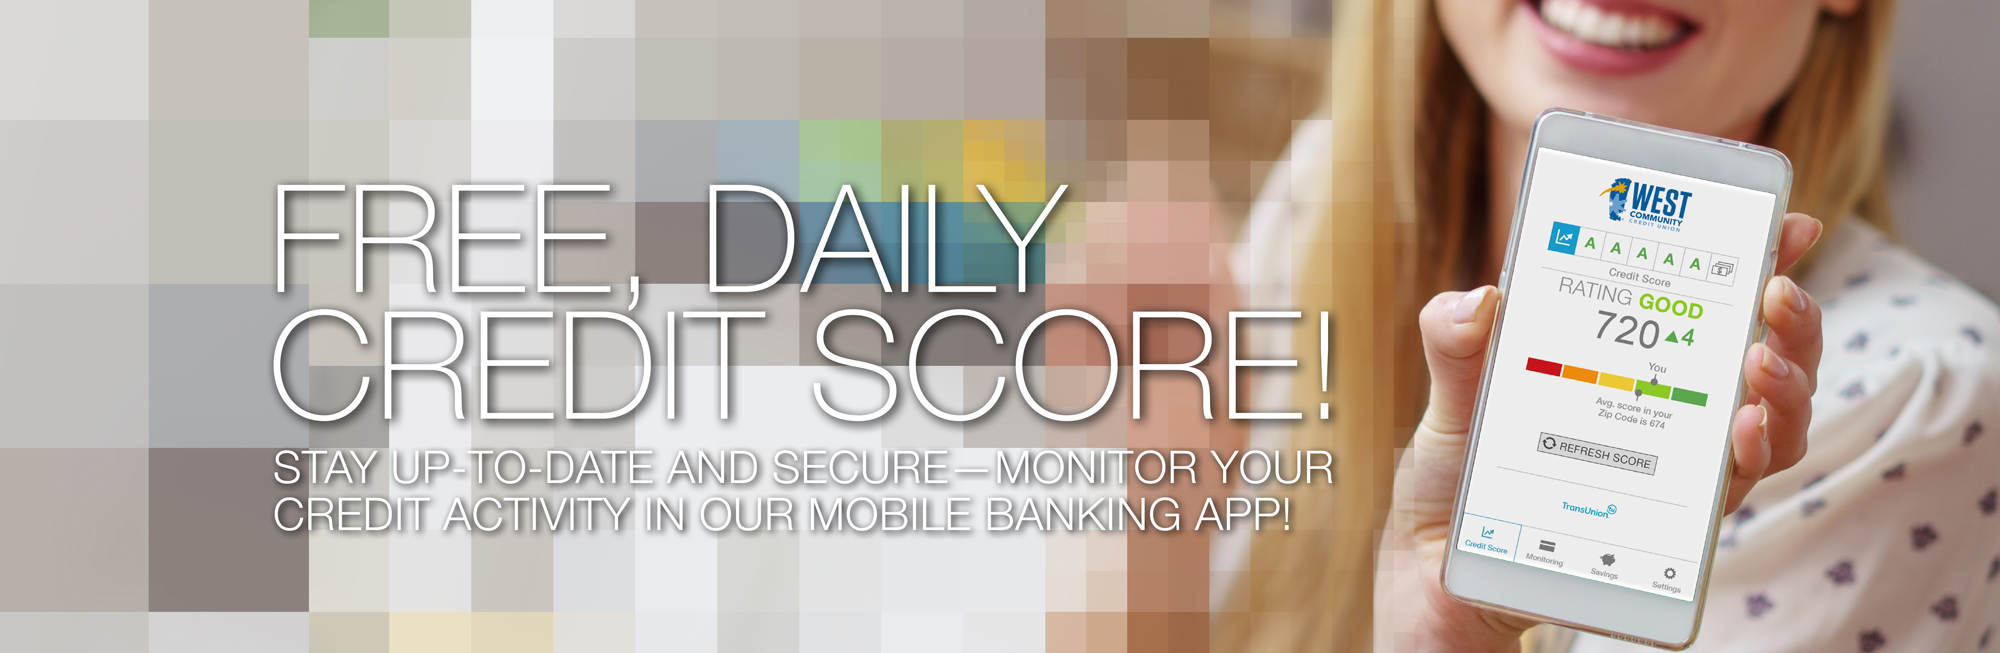 Stay up-to-date and Secure — see your credit score and monitor your credit activity in our Mobile Banking App!